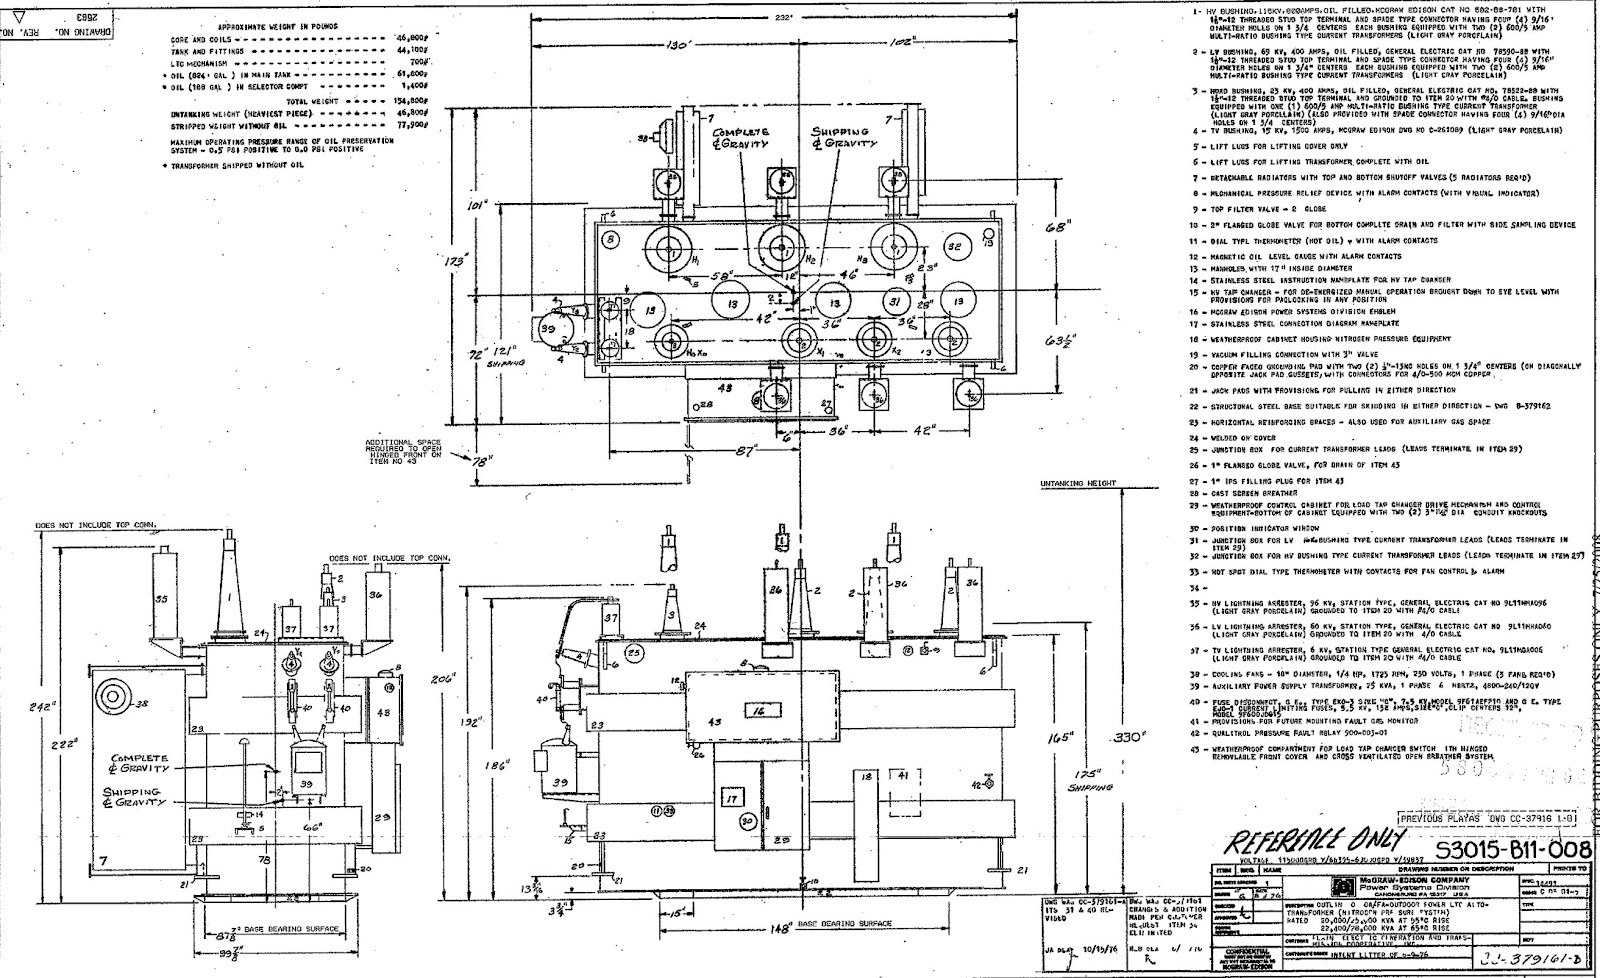 acme buck boost transformer wiring diagram Collection-In Acme Buck Boost Transformer Wiring Diagram Within Transformers Diagrams 19-d